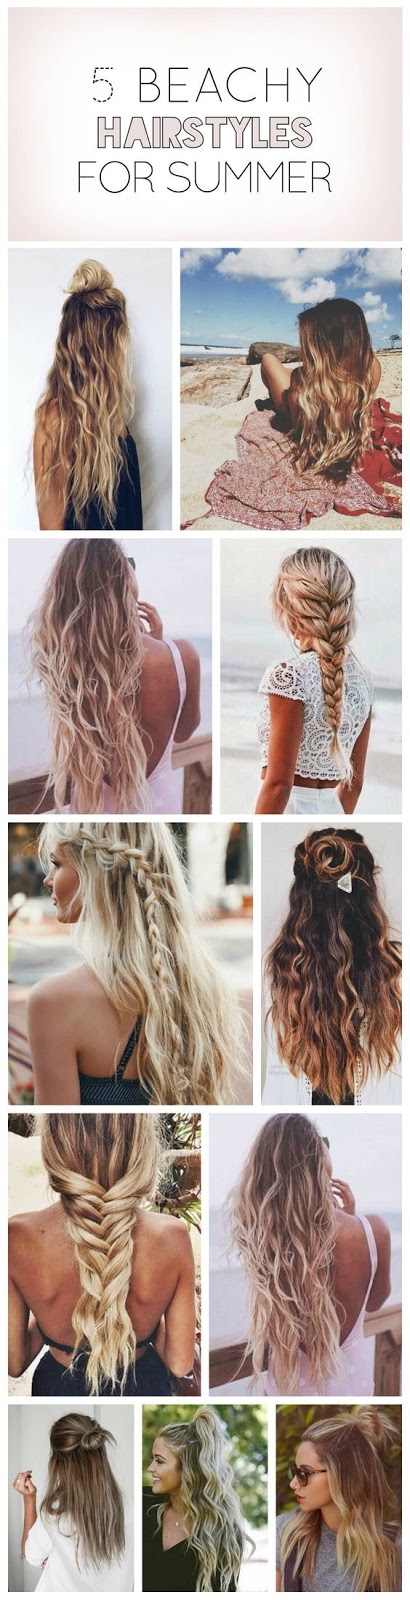 Amazing Hairstyles for Party and Holidays #beautiful #hair #tryit